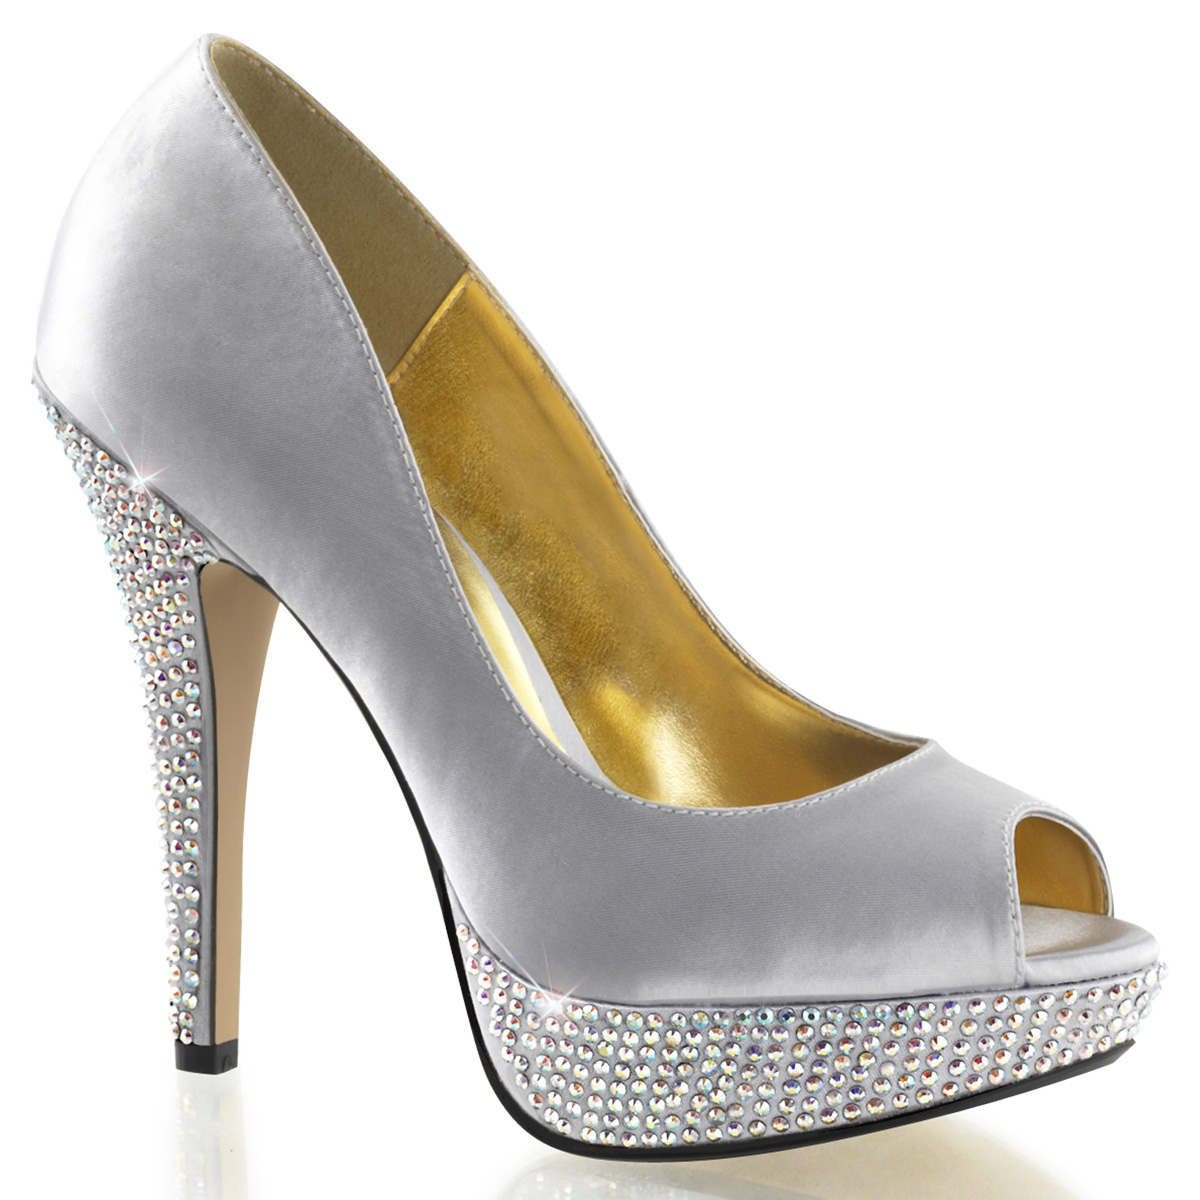 51648dd967d51a Fabulicious High Heel PEEP Toe PUMPS Satin Rhinestones Platform Lolita-02  Silver 11. About this product. Picture 1 of 2  Picture 2 of 2